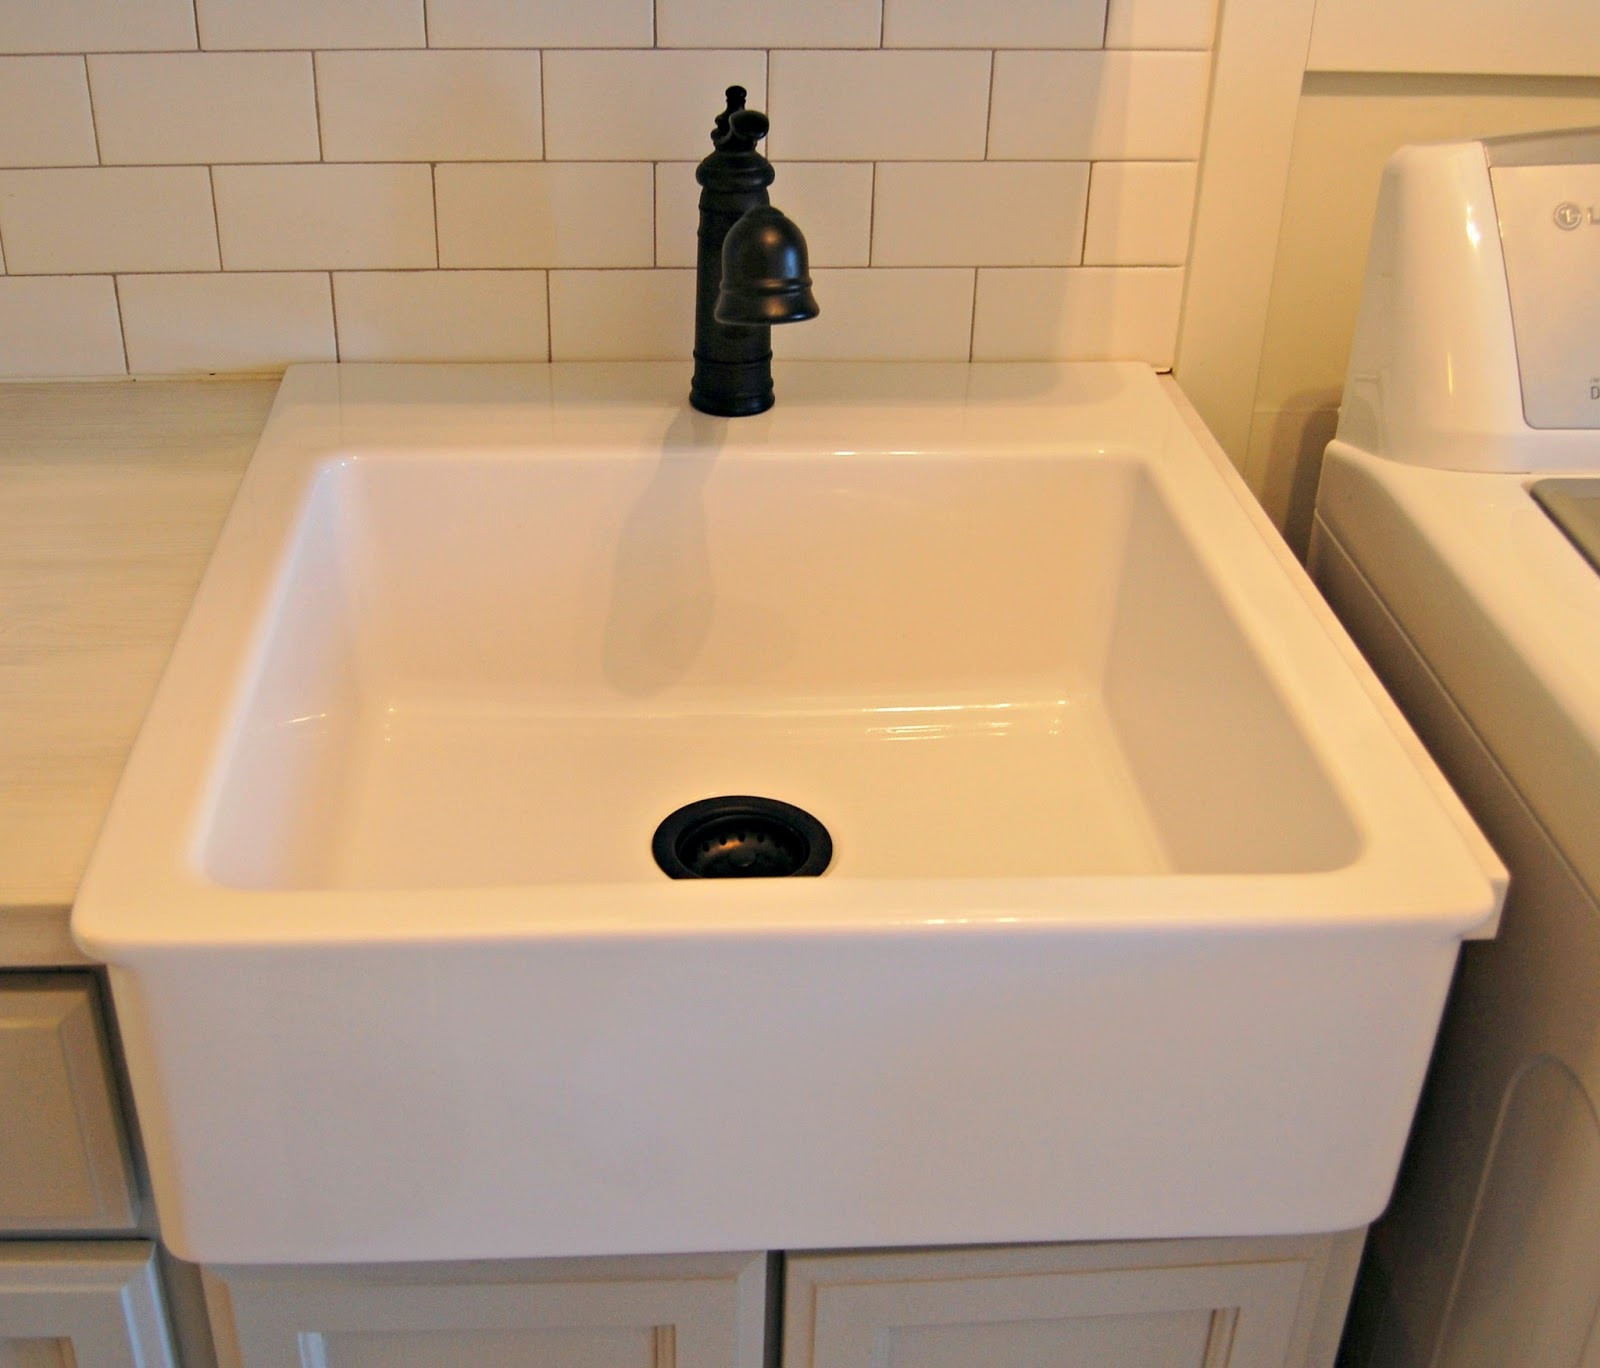 Best ideas about Laundry Room Utility Sink . Save or Pin Roly Poly Farm Laundry Room Reveal Now.